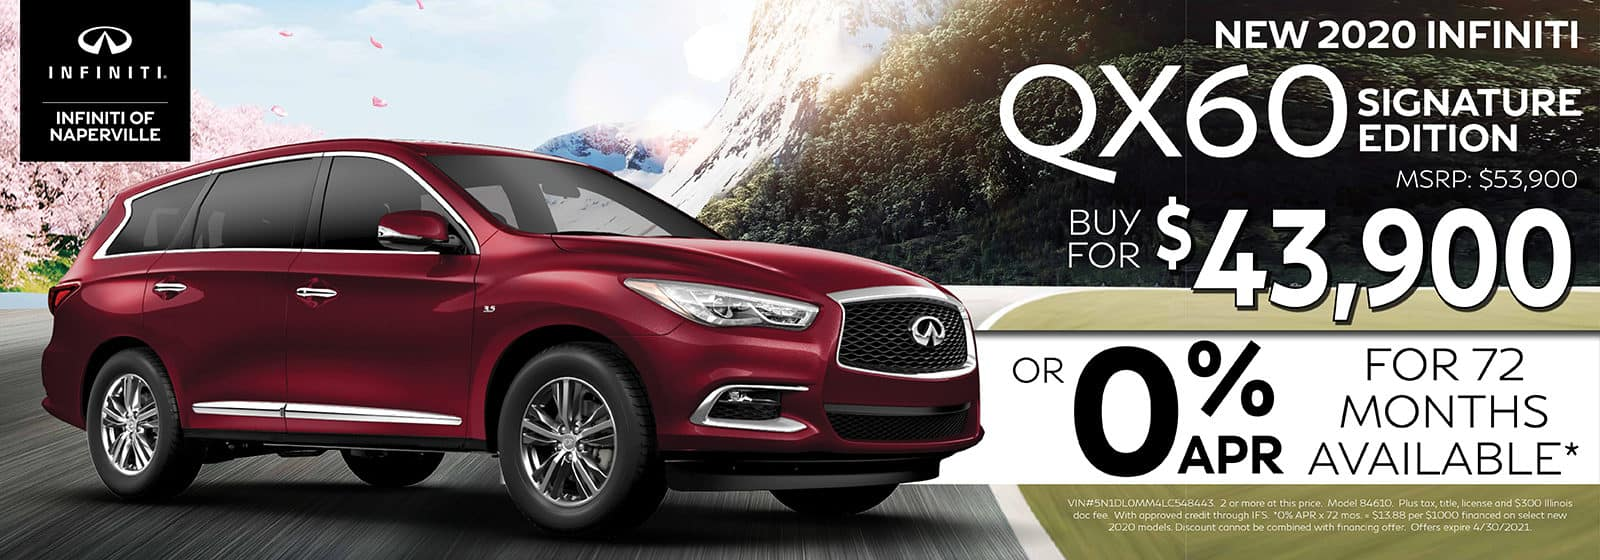 2020 INFINITI QX60 Buy or Lease Offer | INFINITI of Naperville